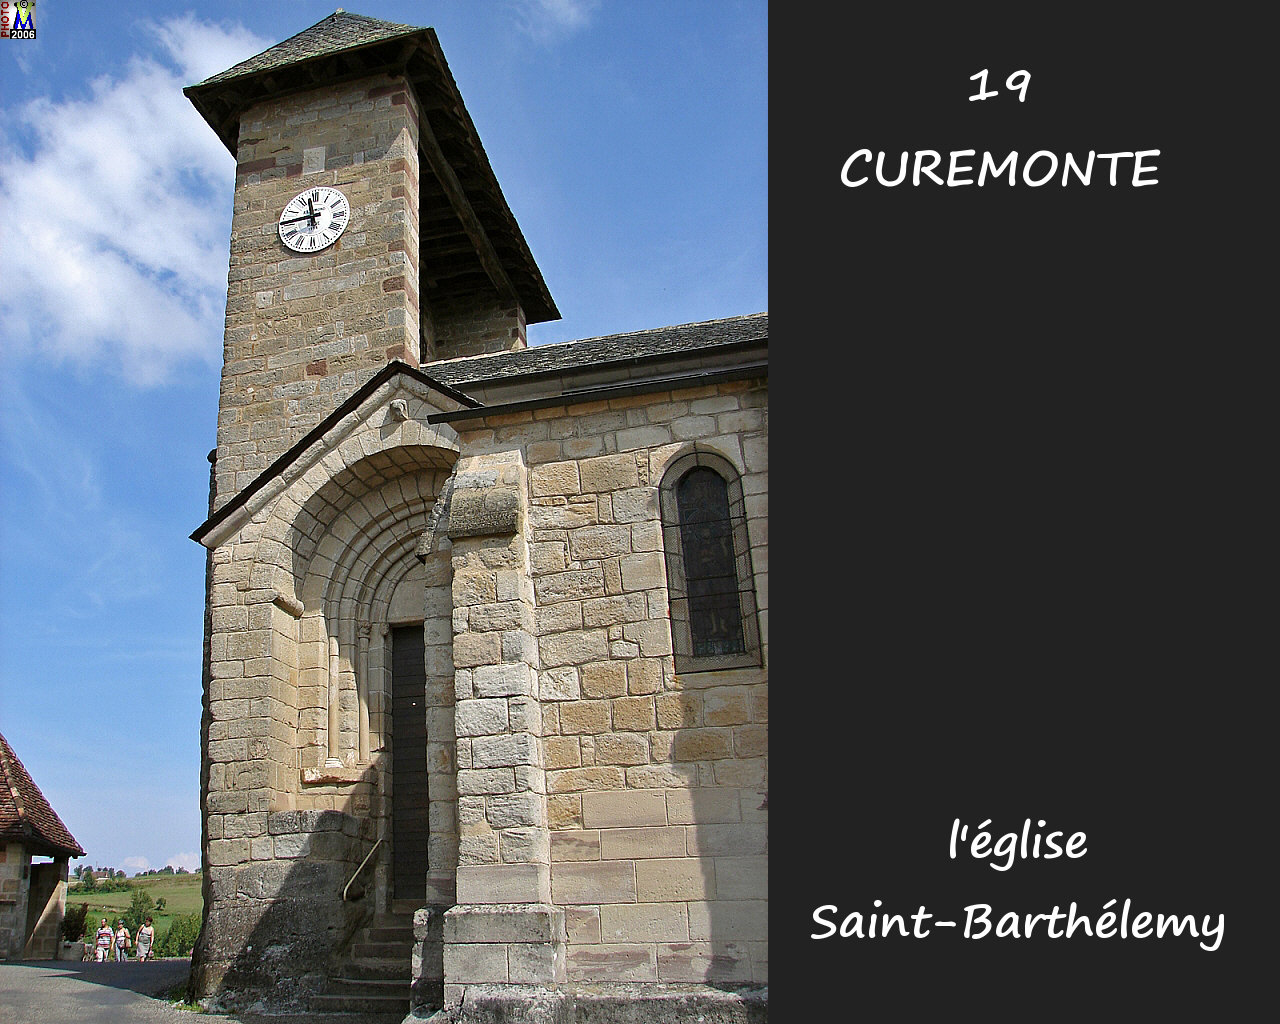 19CUREMONTE_eglise_102.jpg